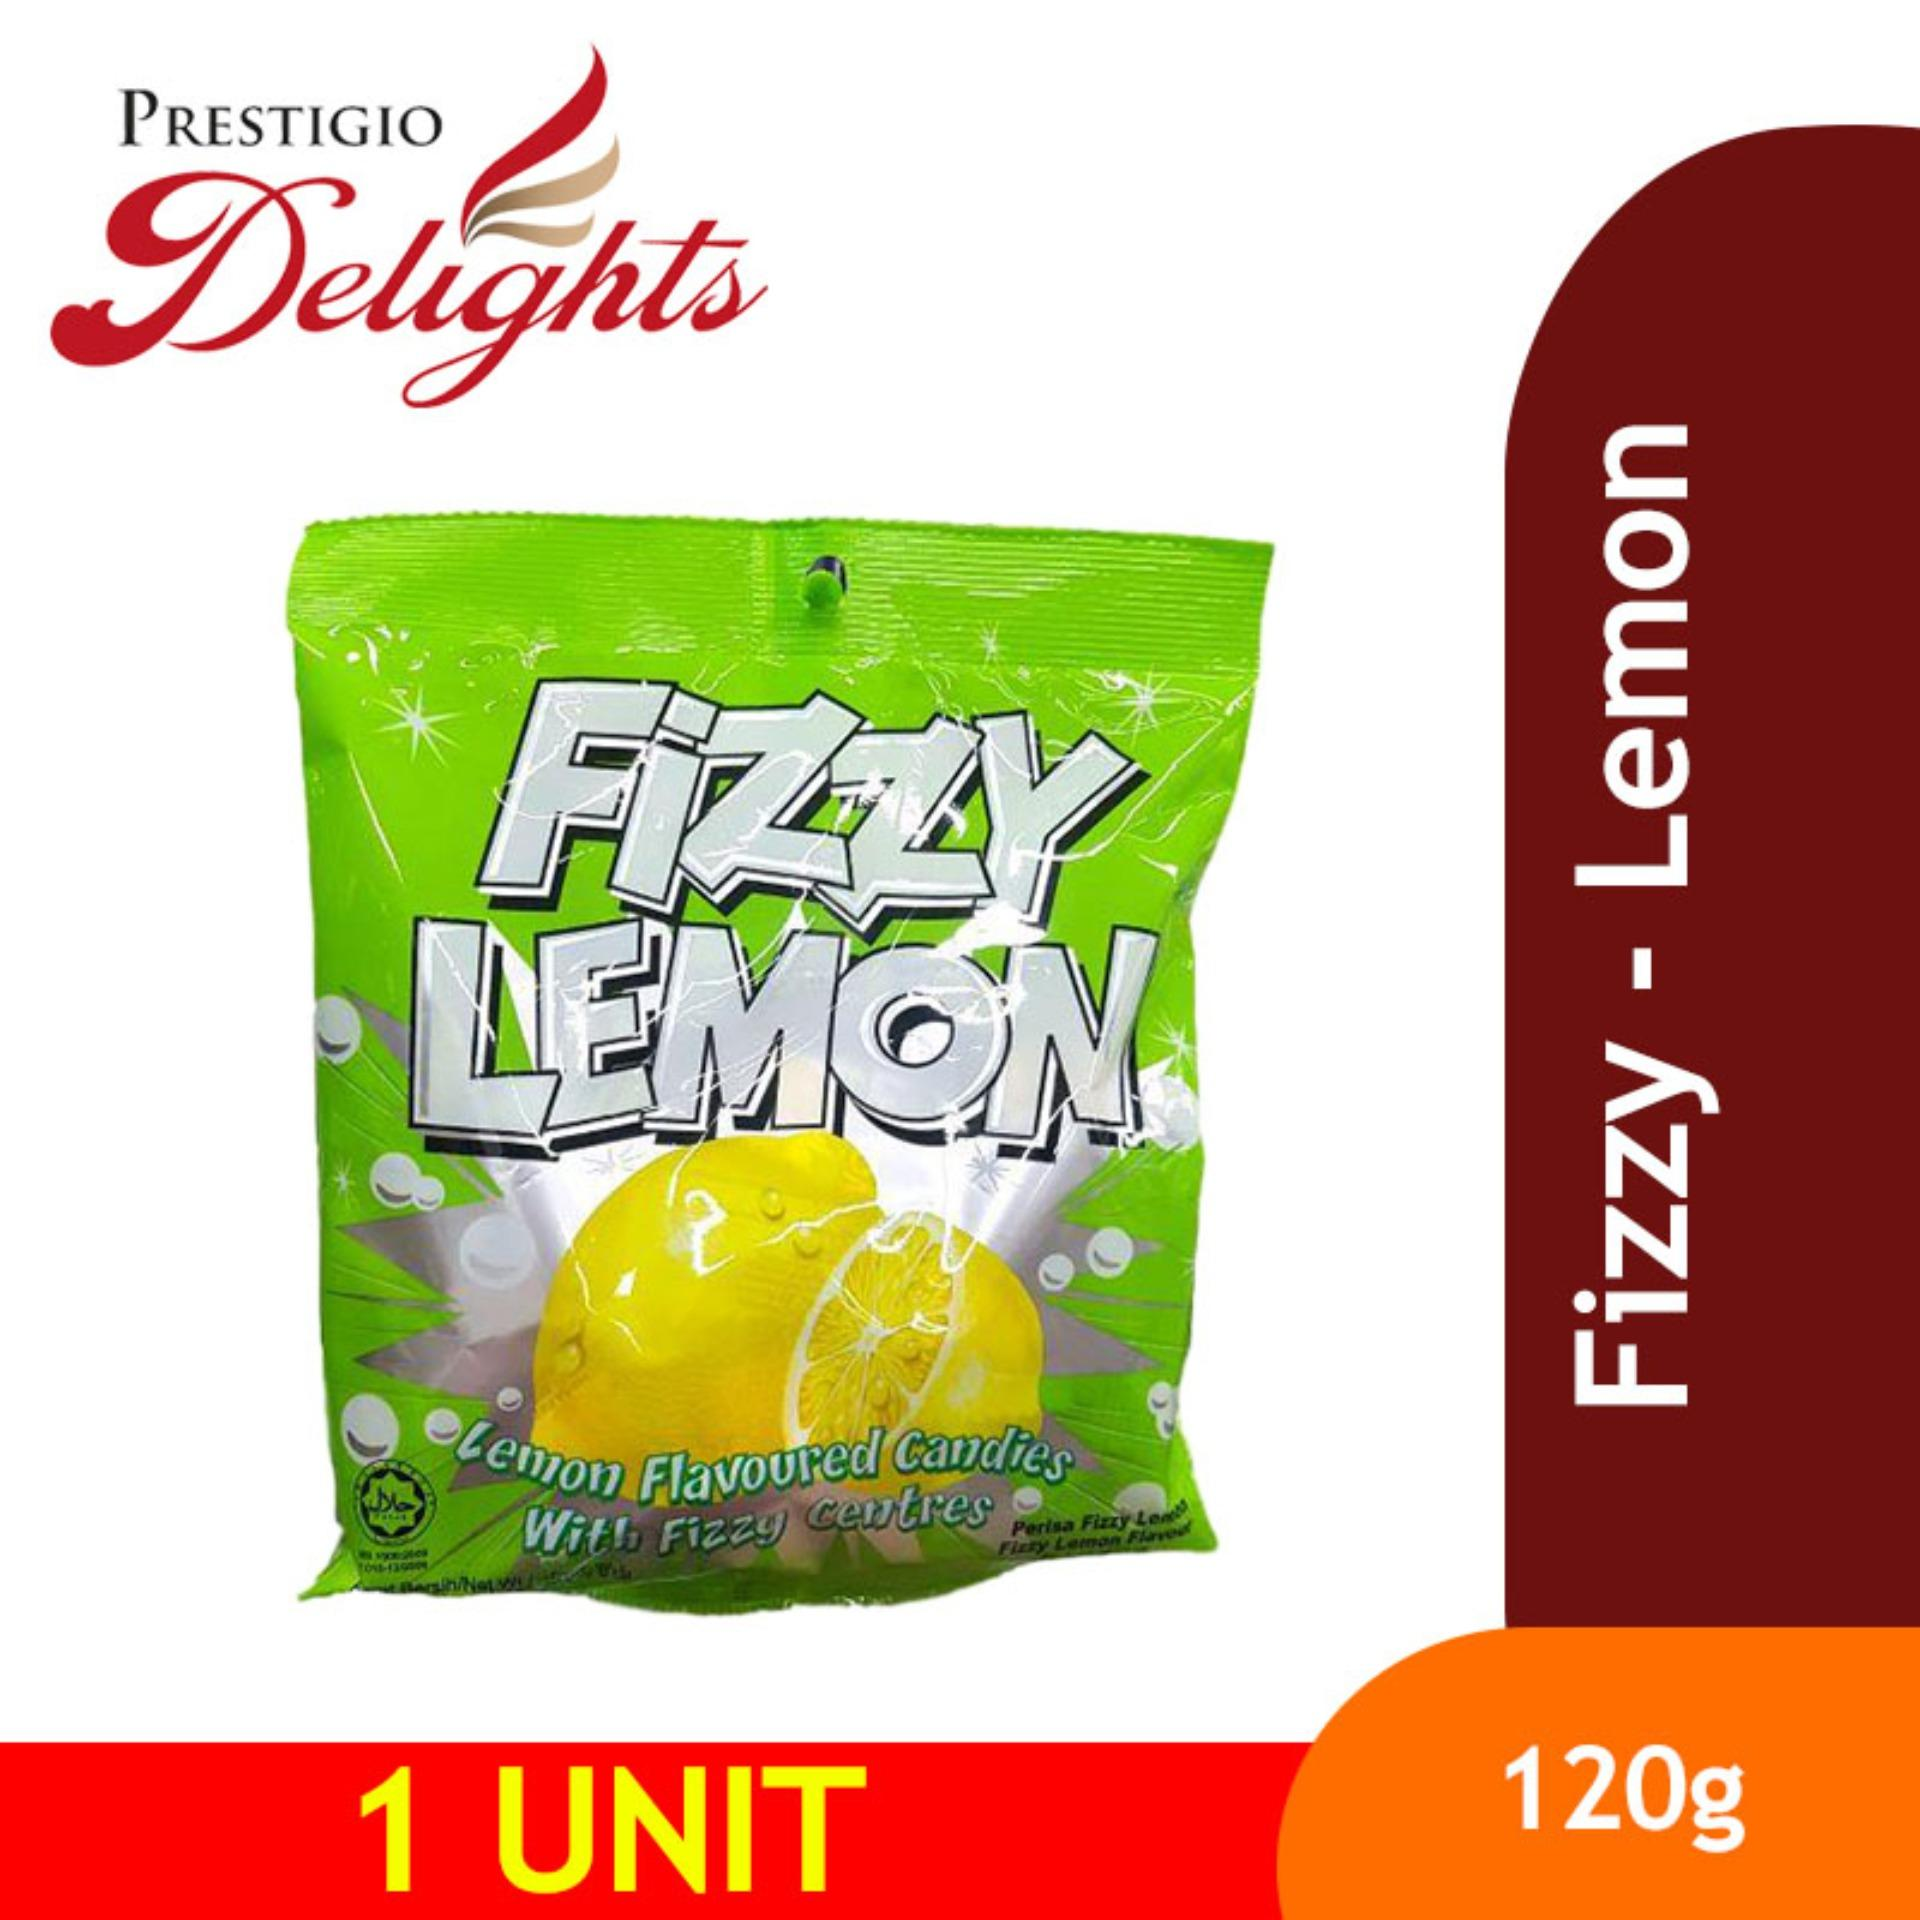 Fizzy - Lemon By Prestigio Delights.